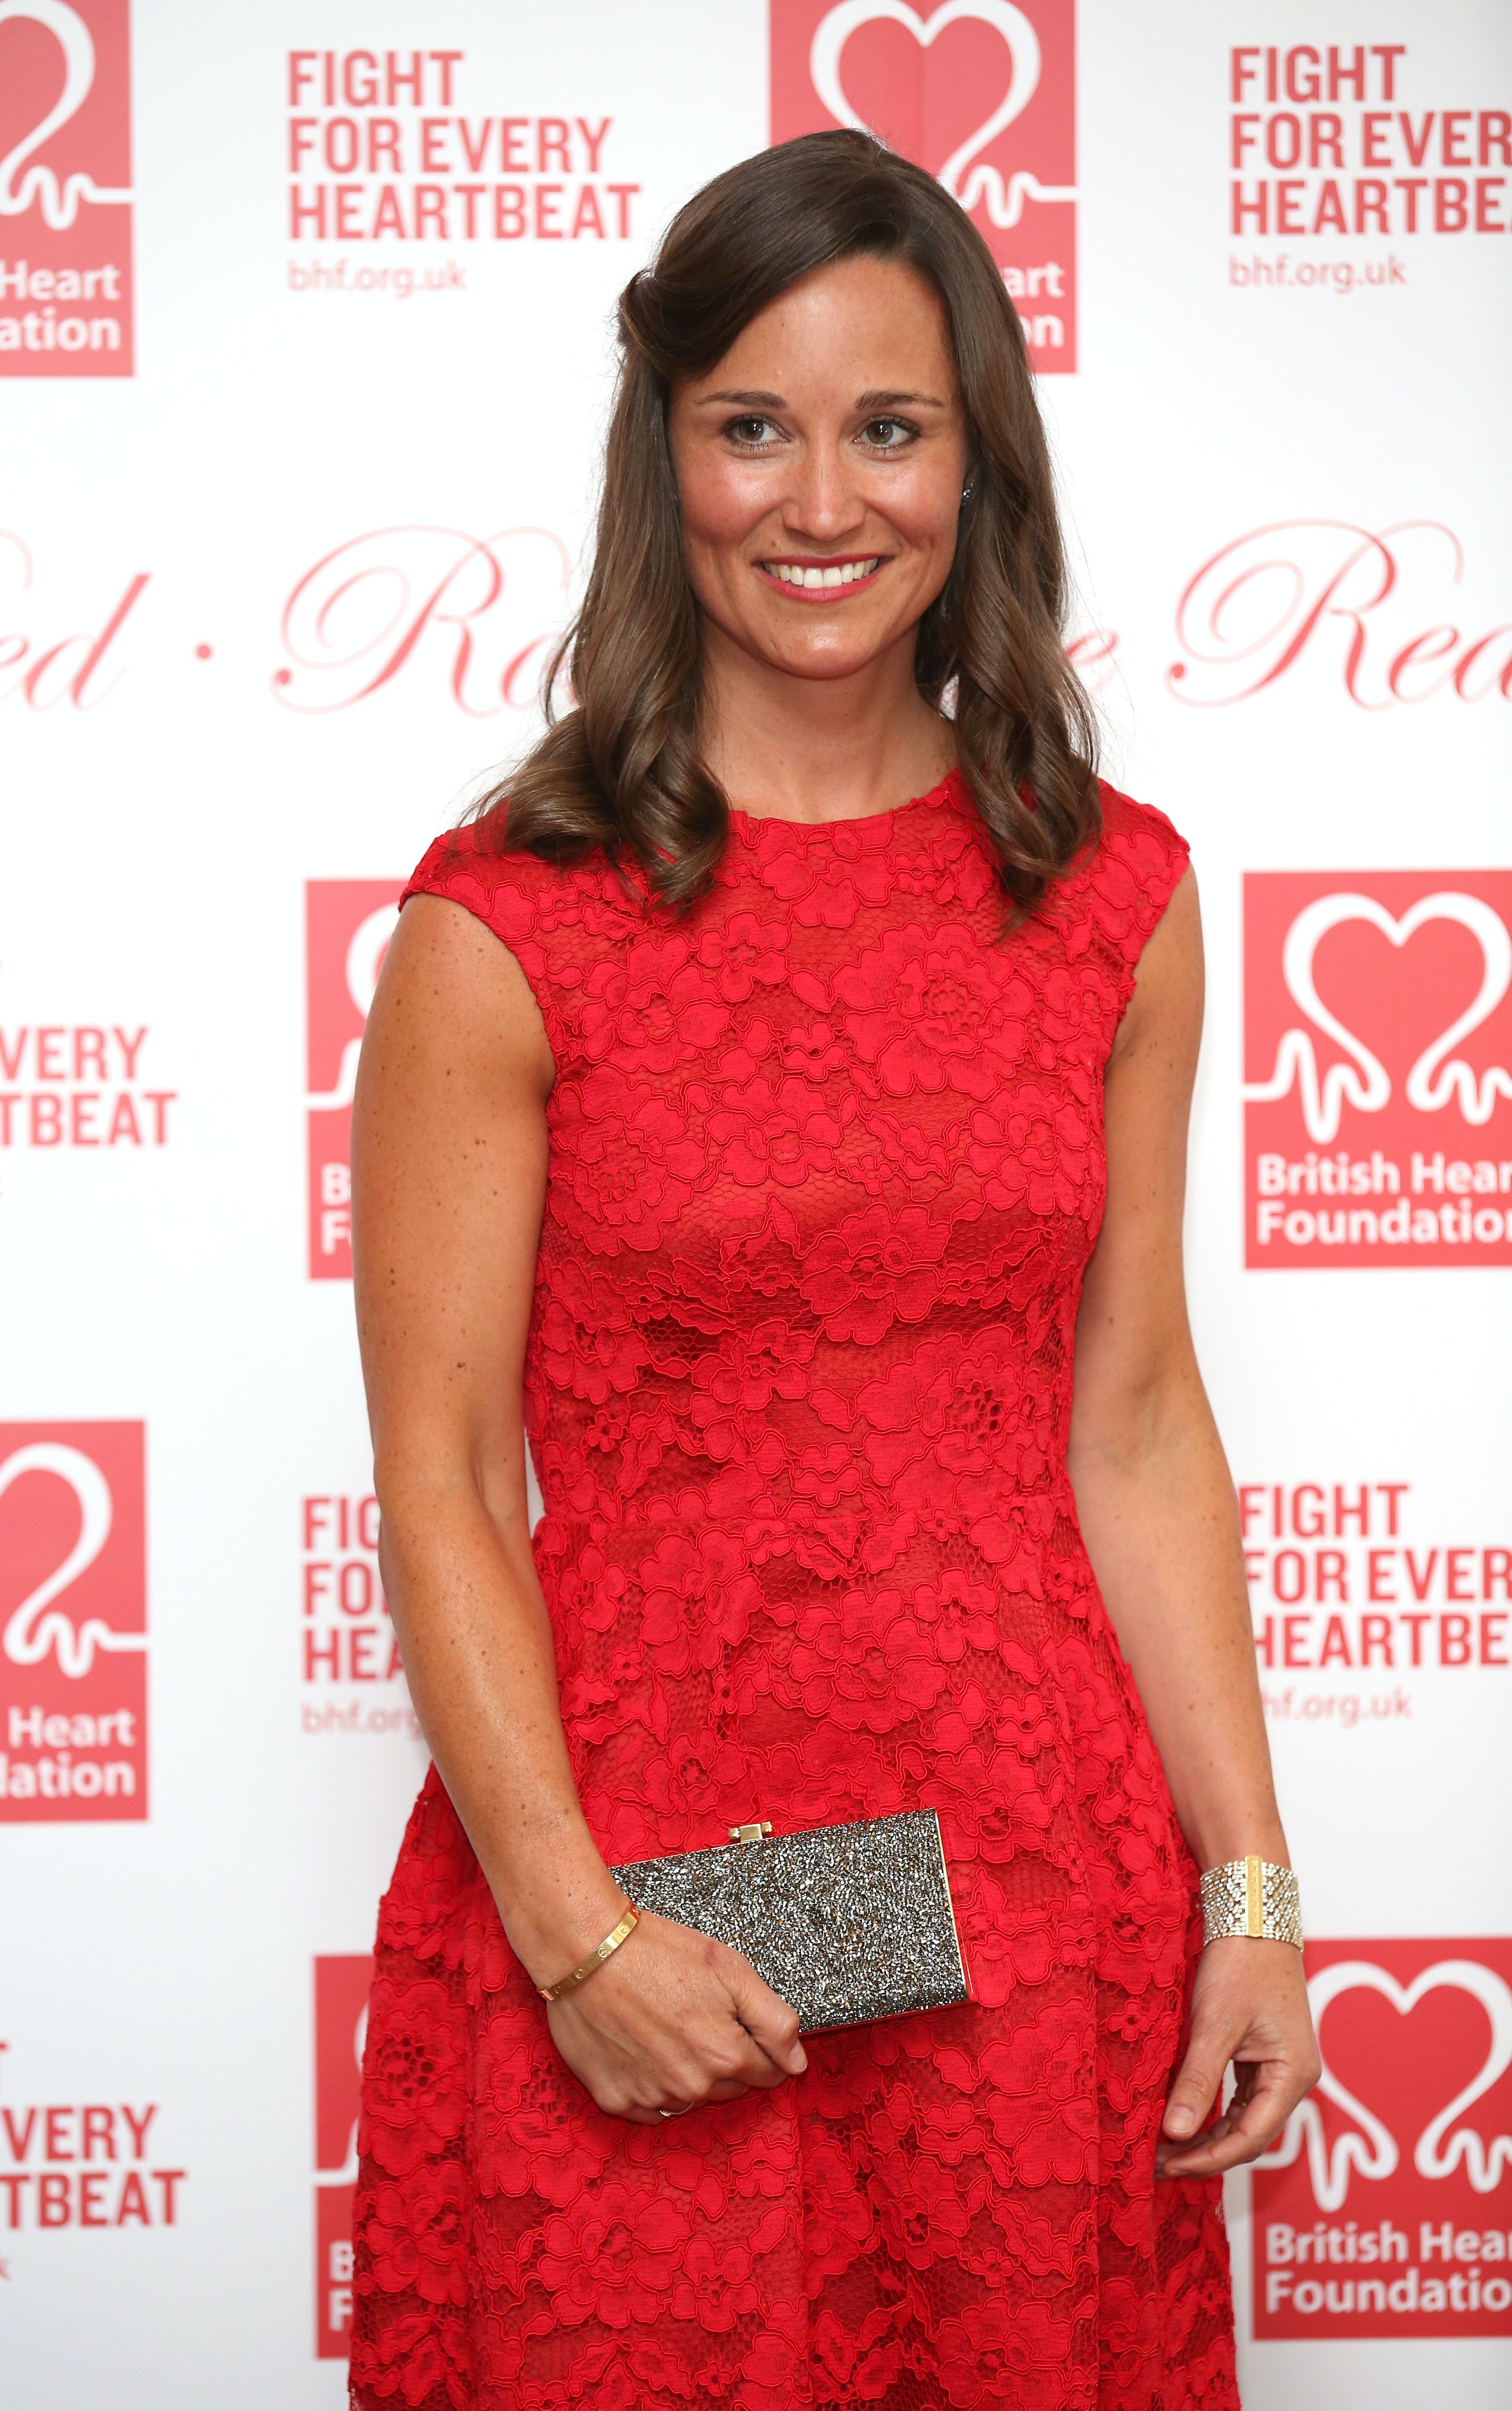 images Pippa Middleton Just Gave Birth To Her First Child, A Baby Boy